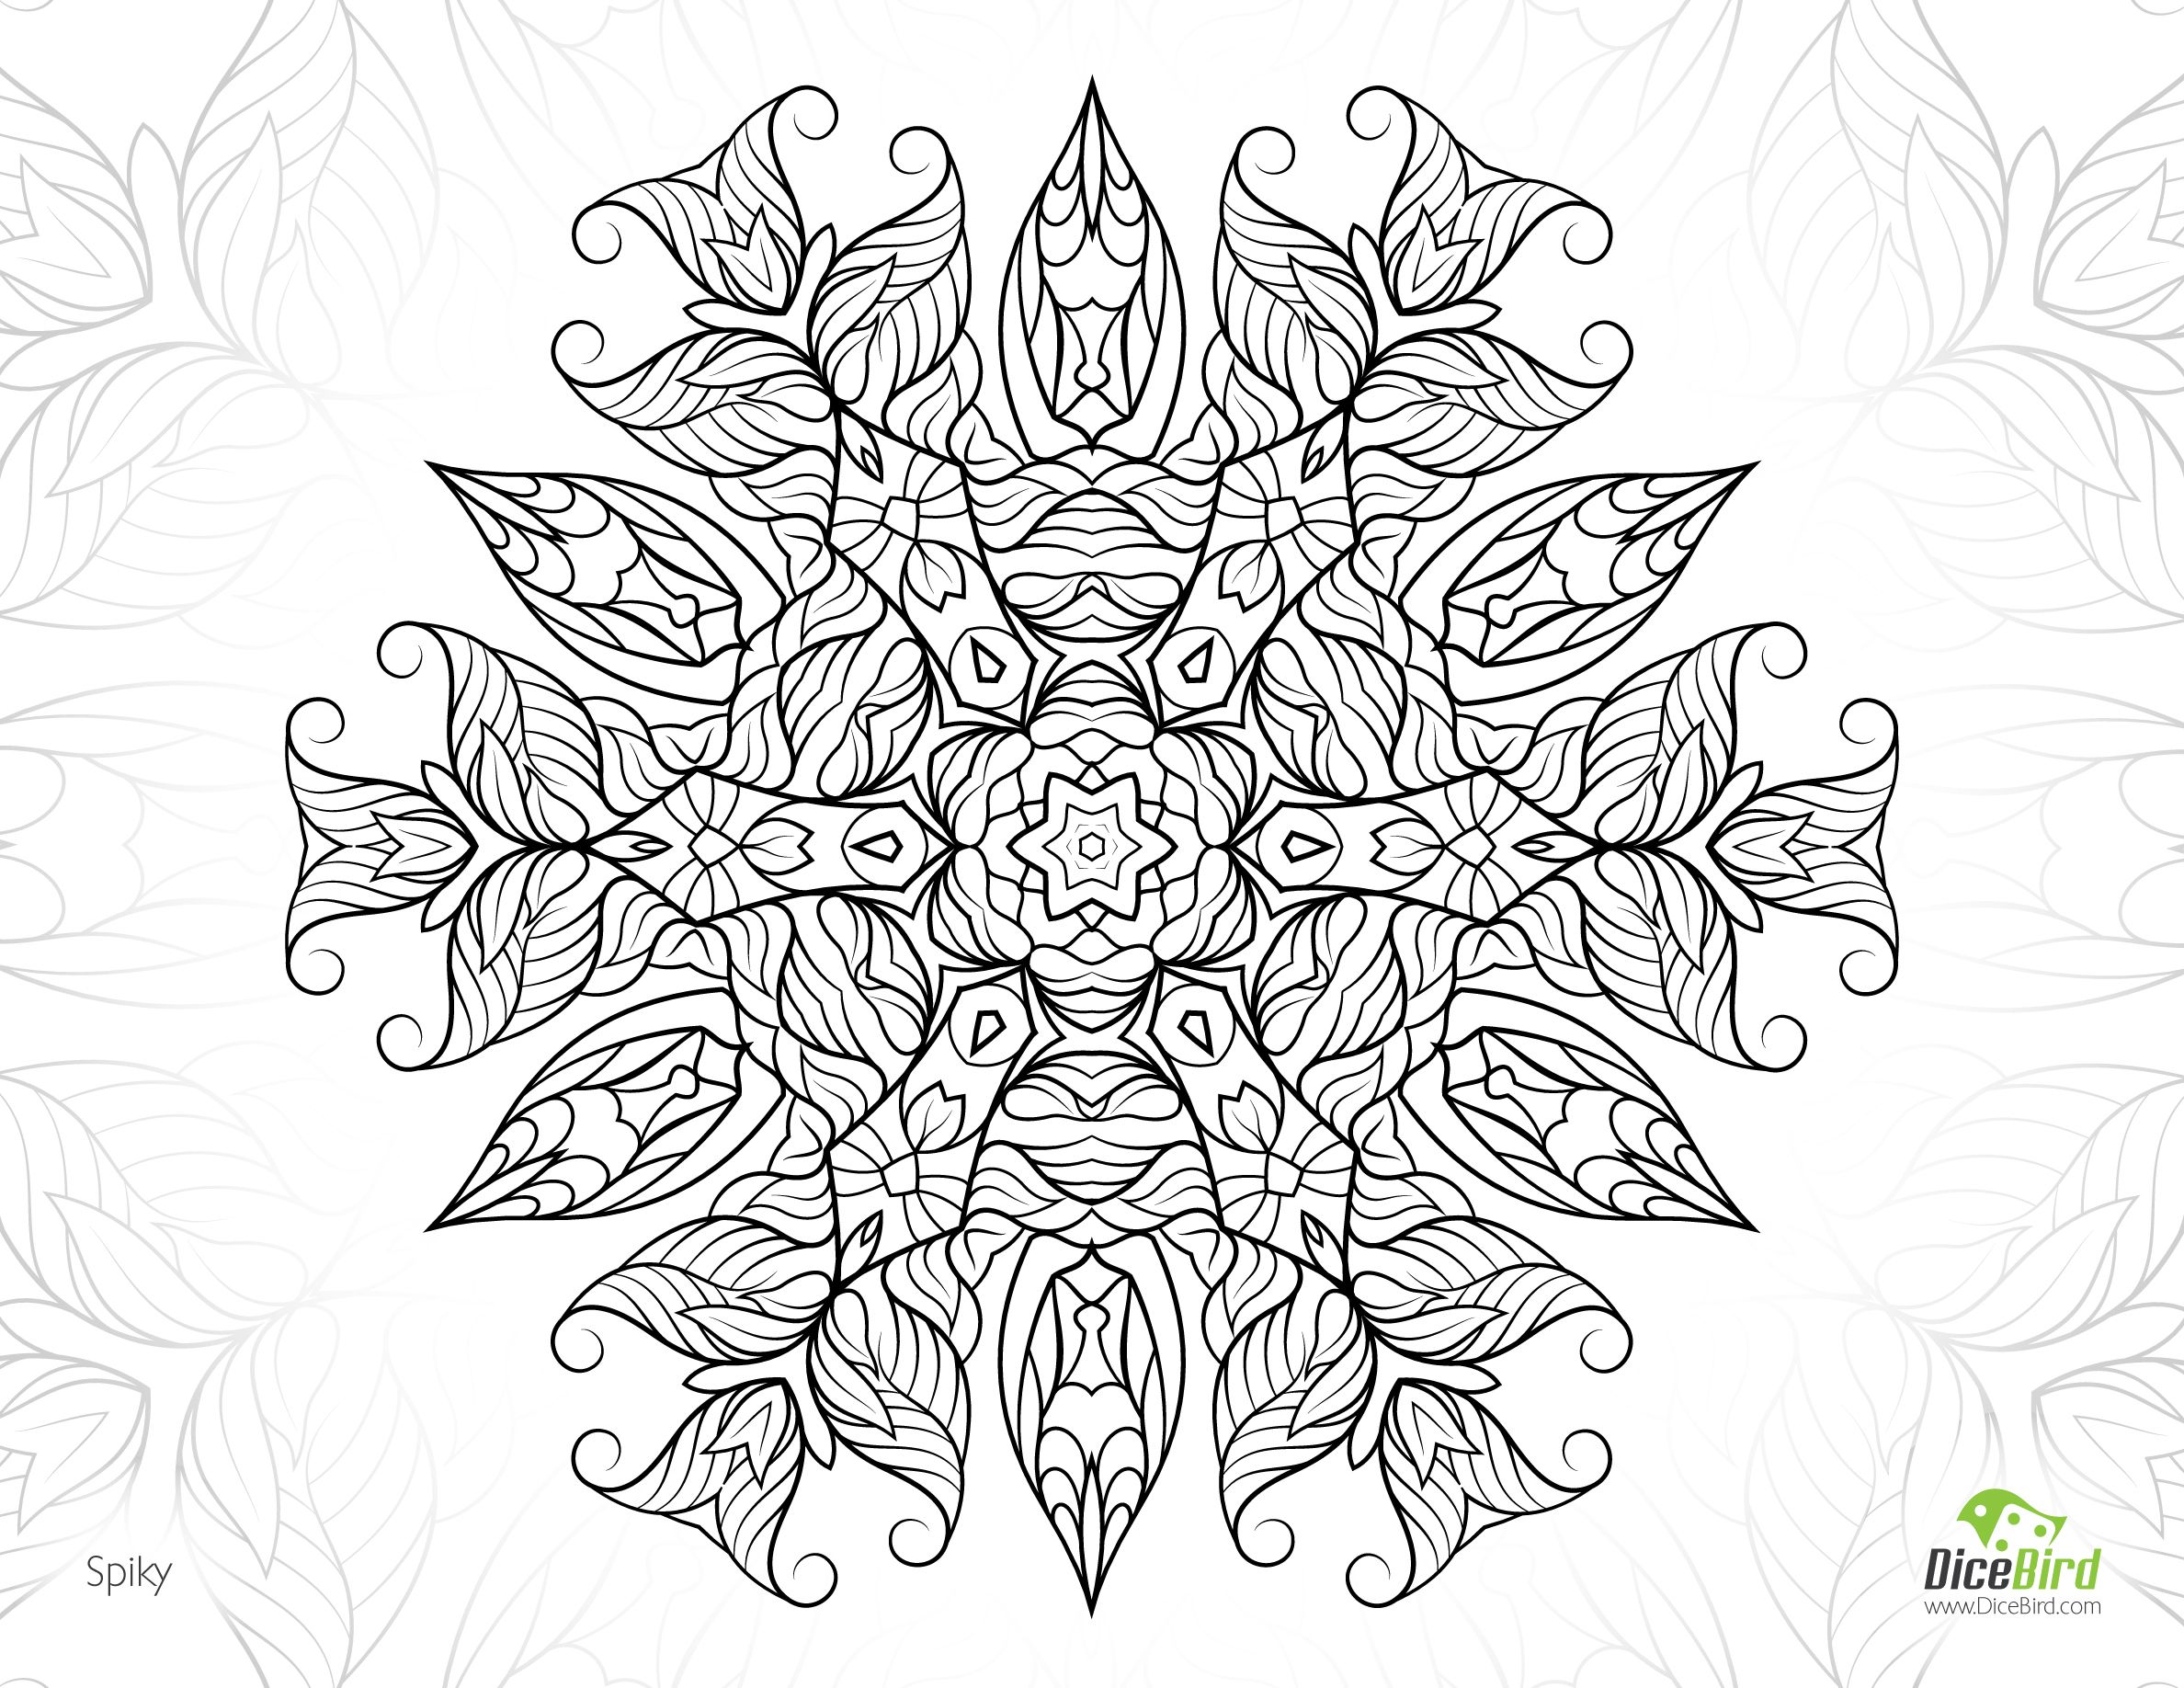 spiky jungle flower hard coloring pages for adults